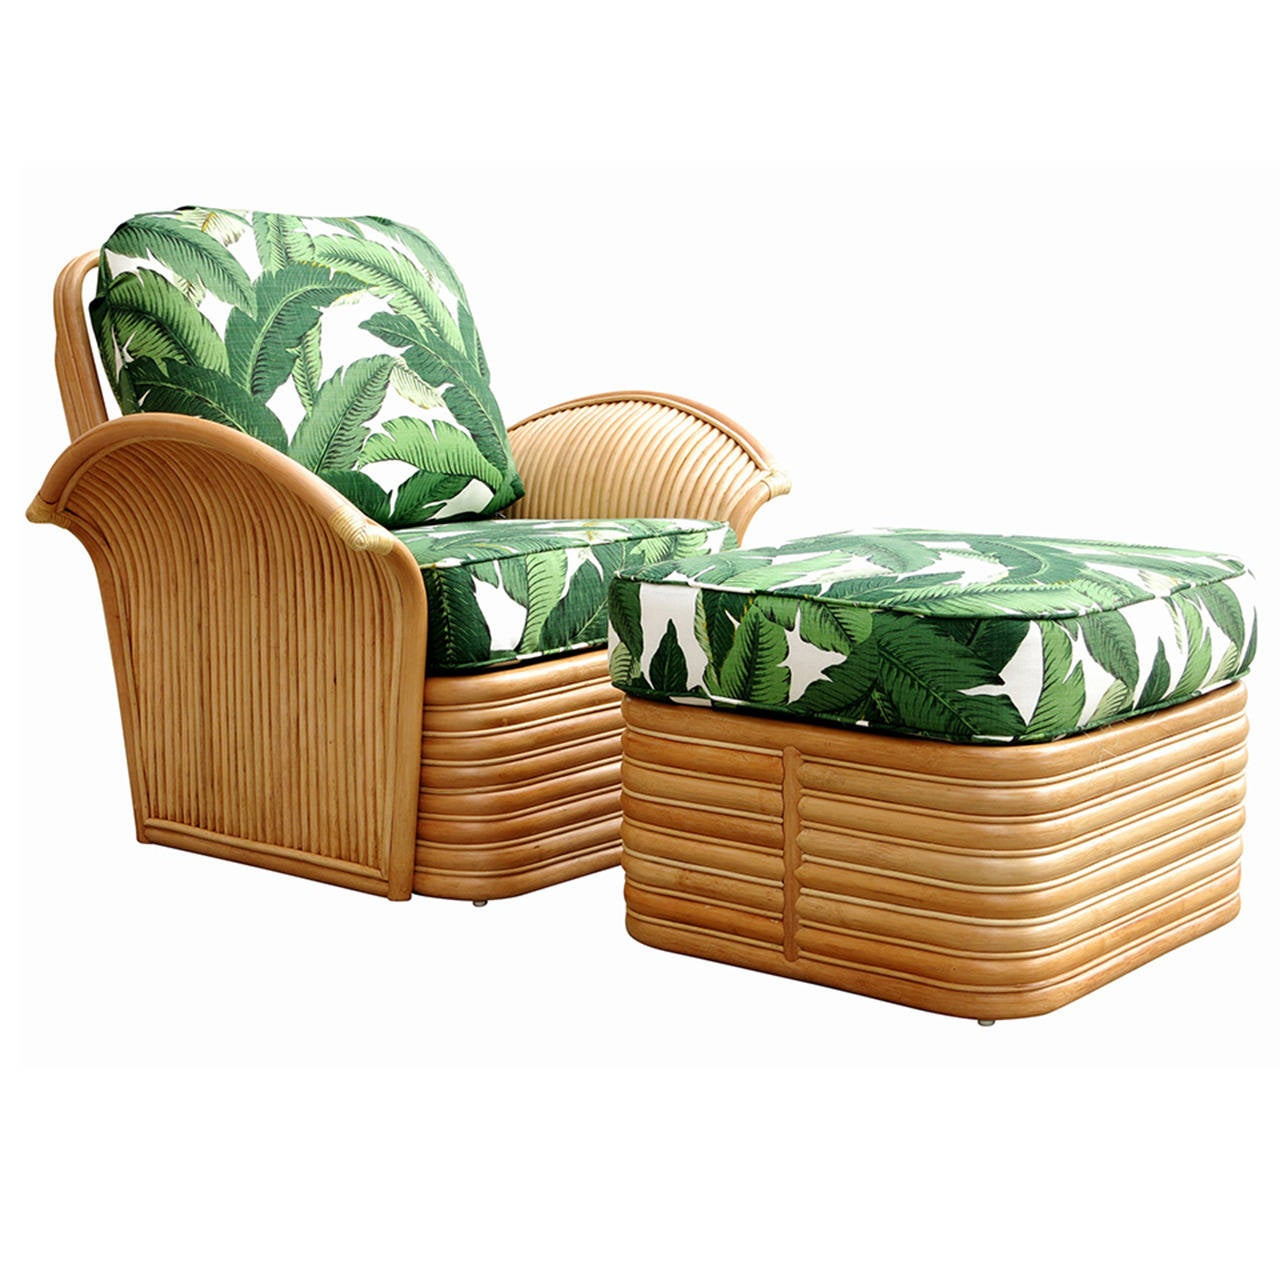 Art deco style rattan fan arm lounge chair with ottoman at for Art deco style lounge